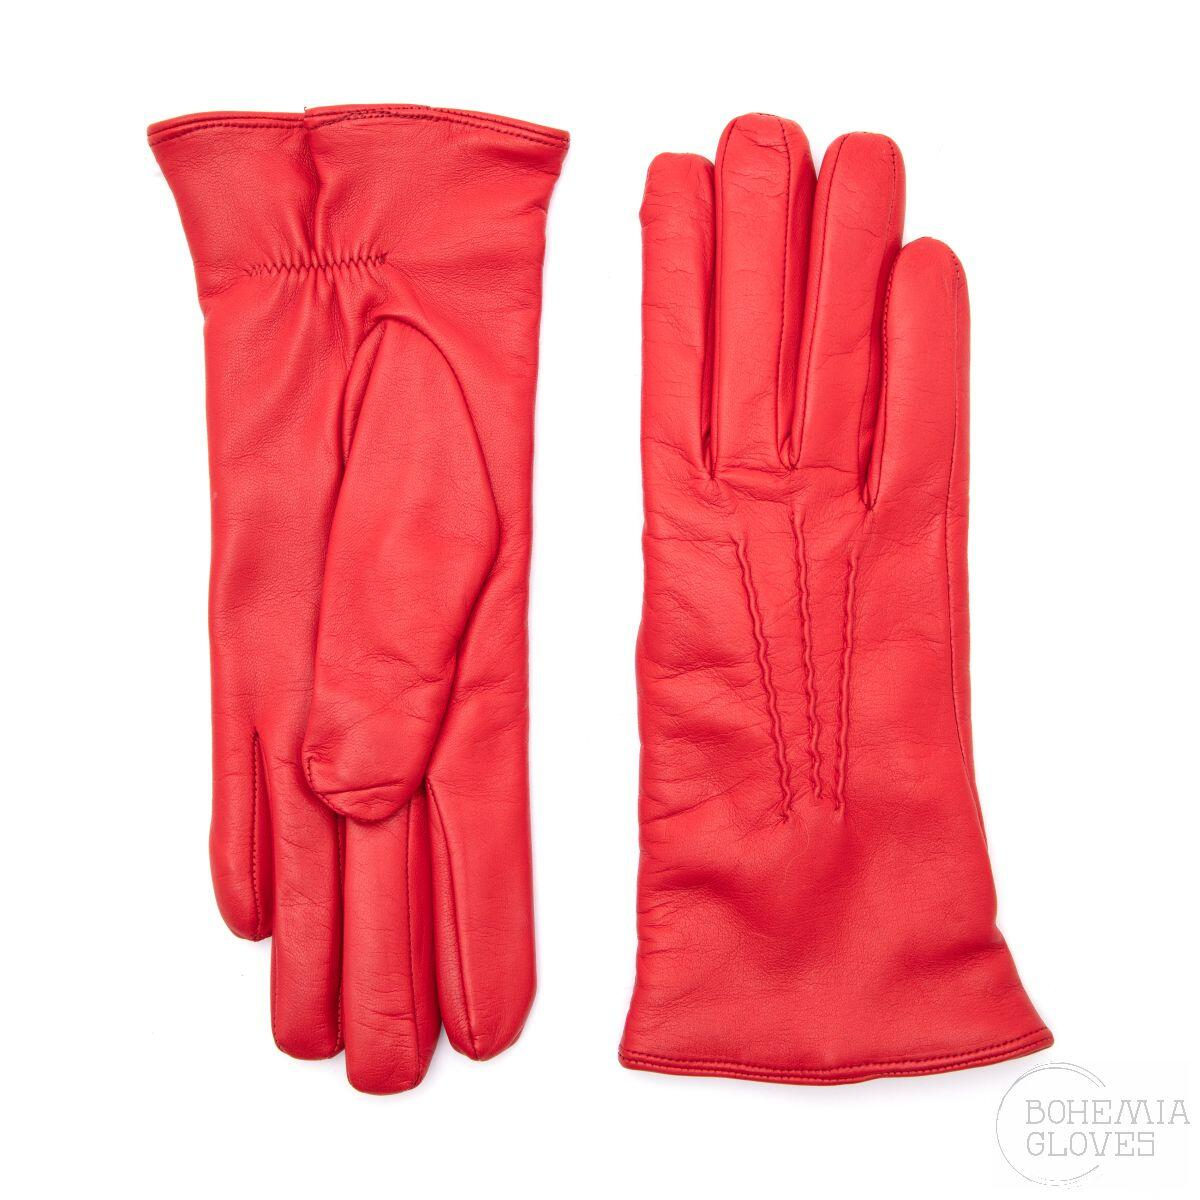 Red leather gloves - BOHEMIA GLOVES